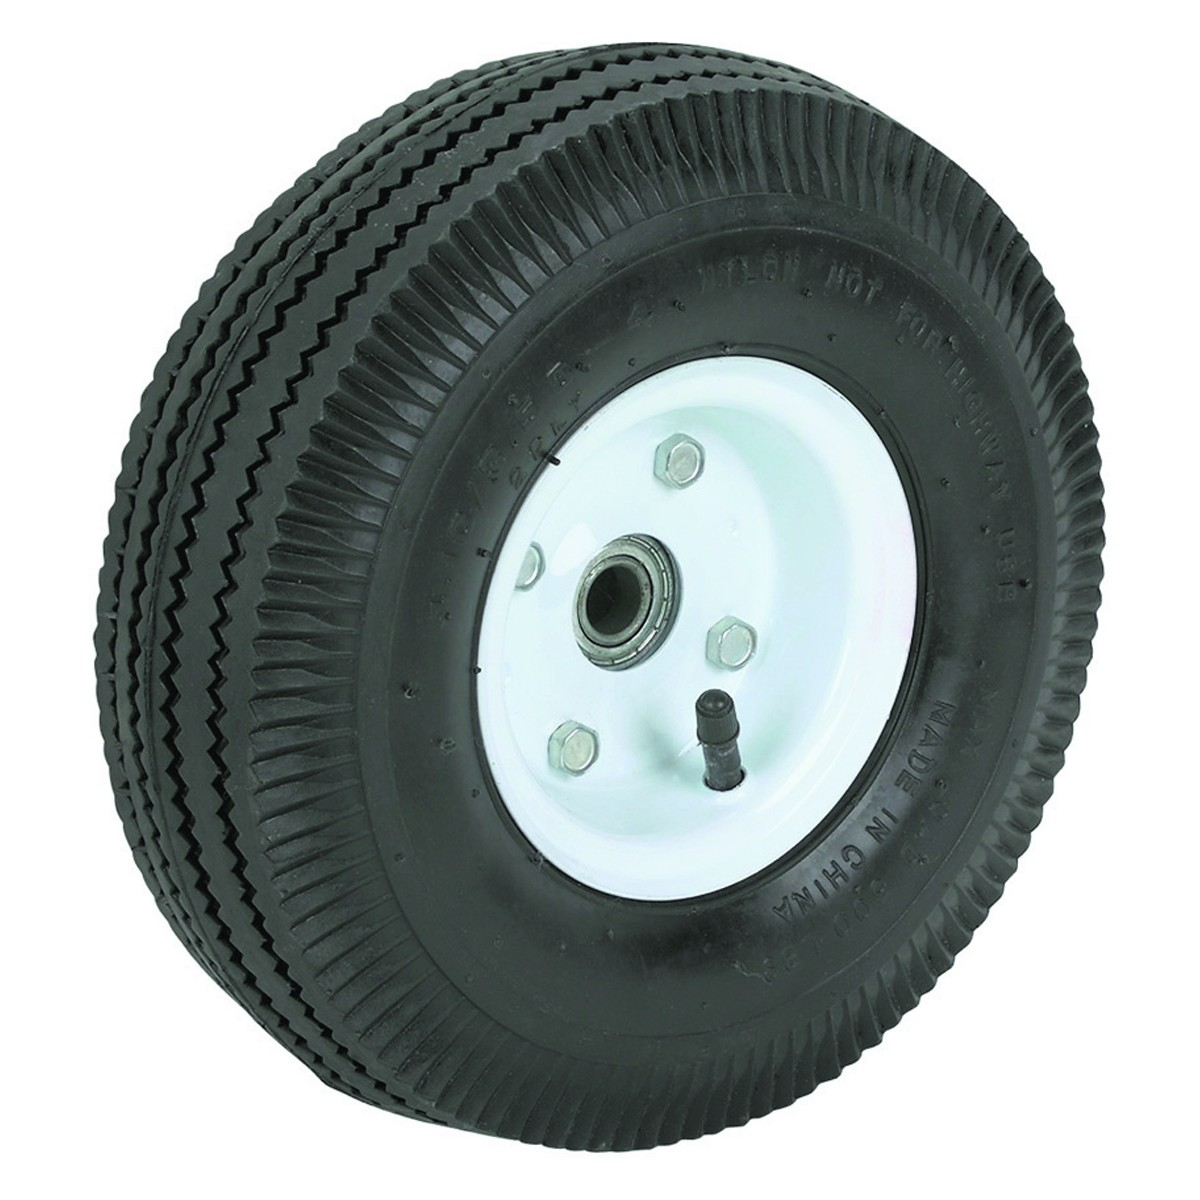 10 in. Pneumatic Tire with Steel Hub